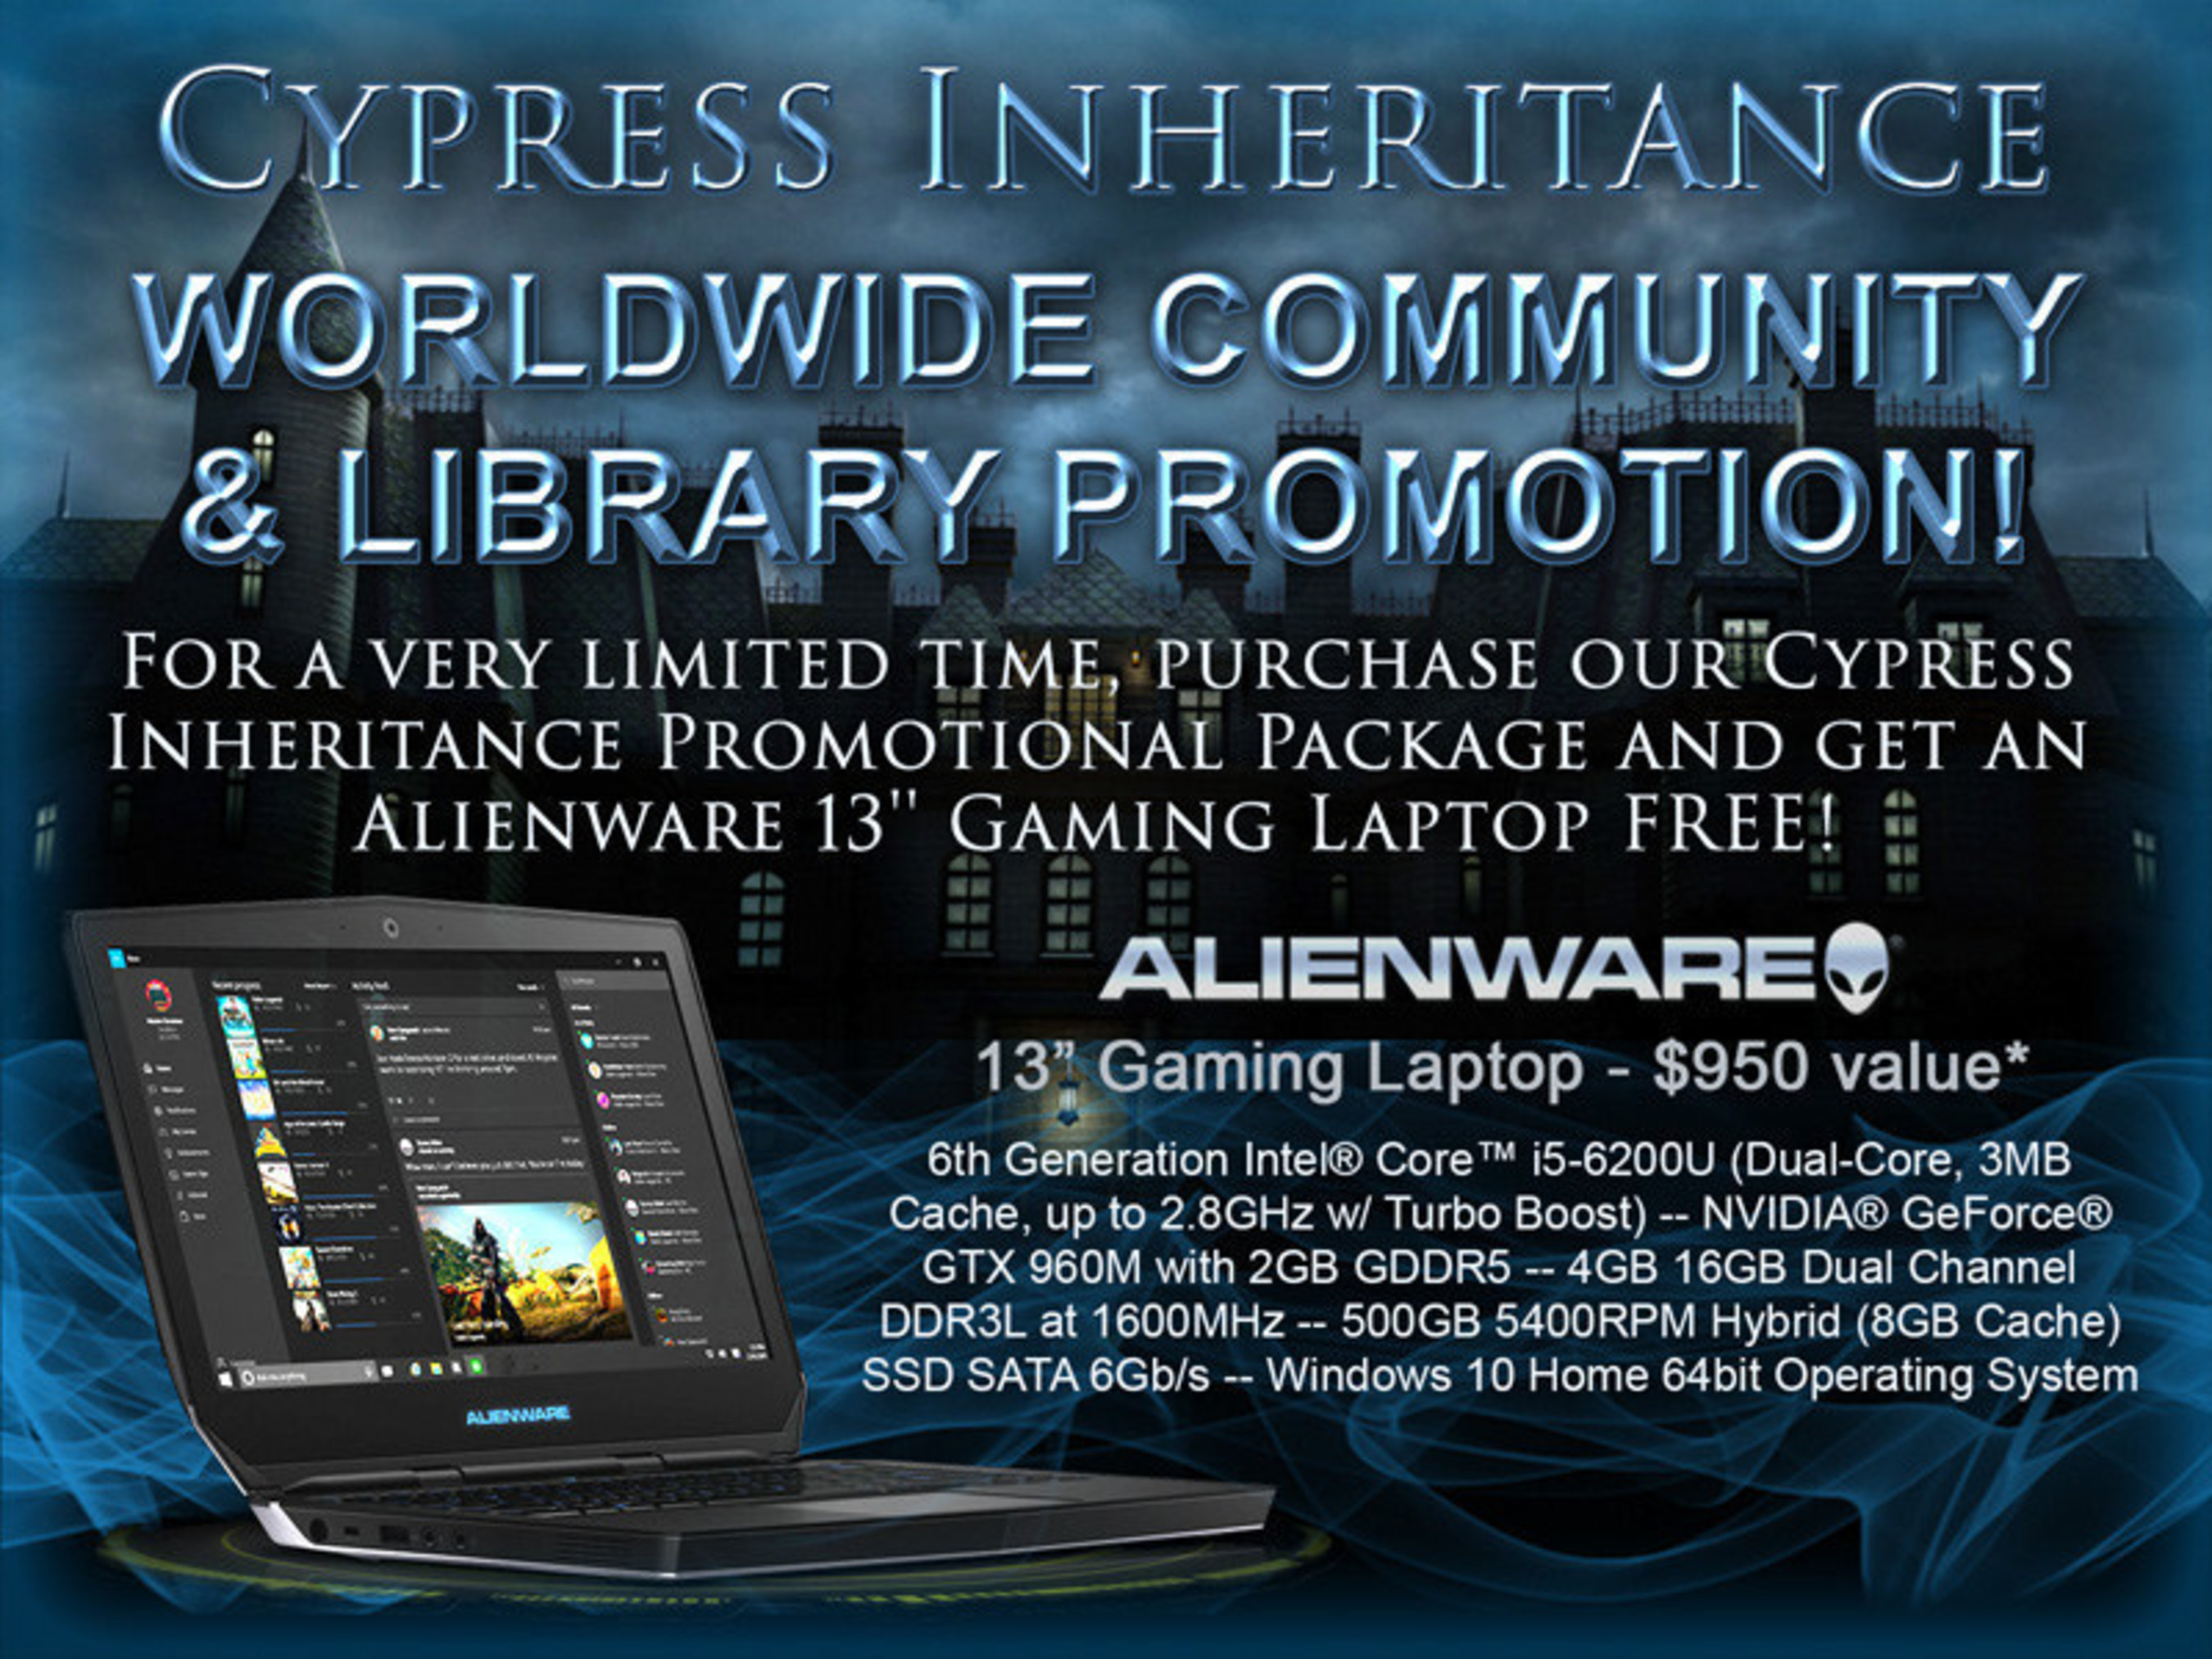 Cypress Inheritance Worldwide Community & Library Promotion